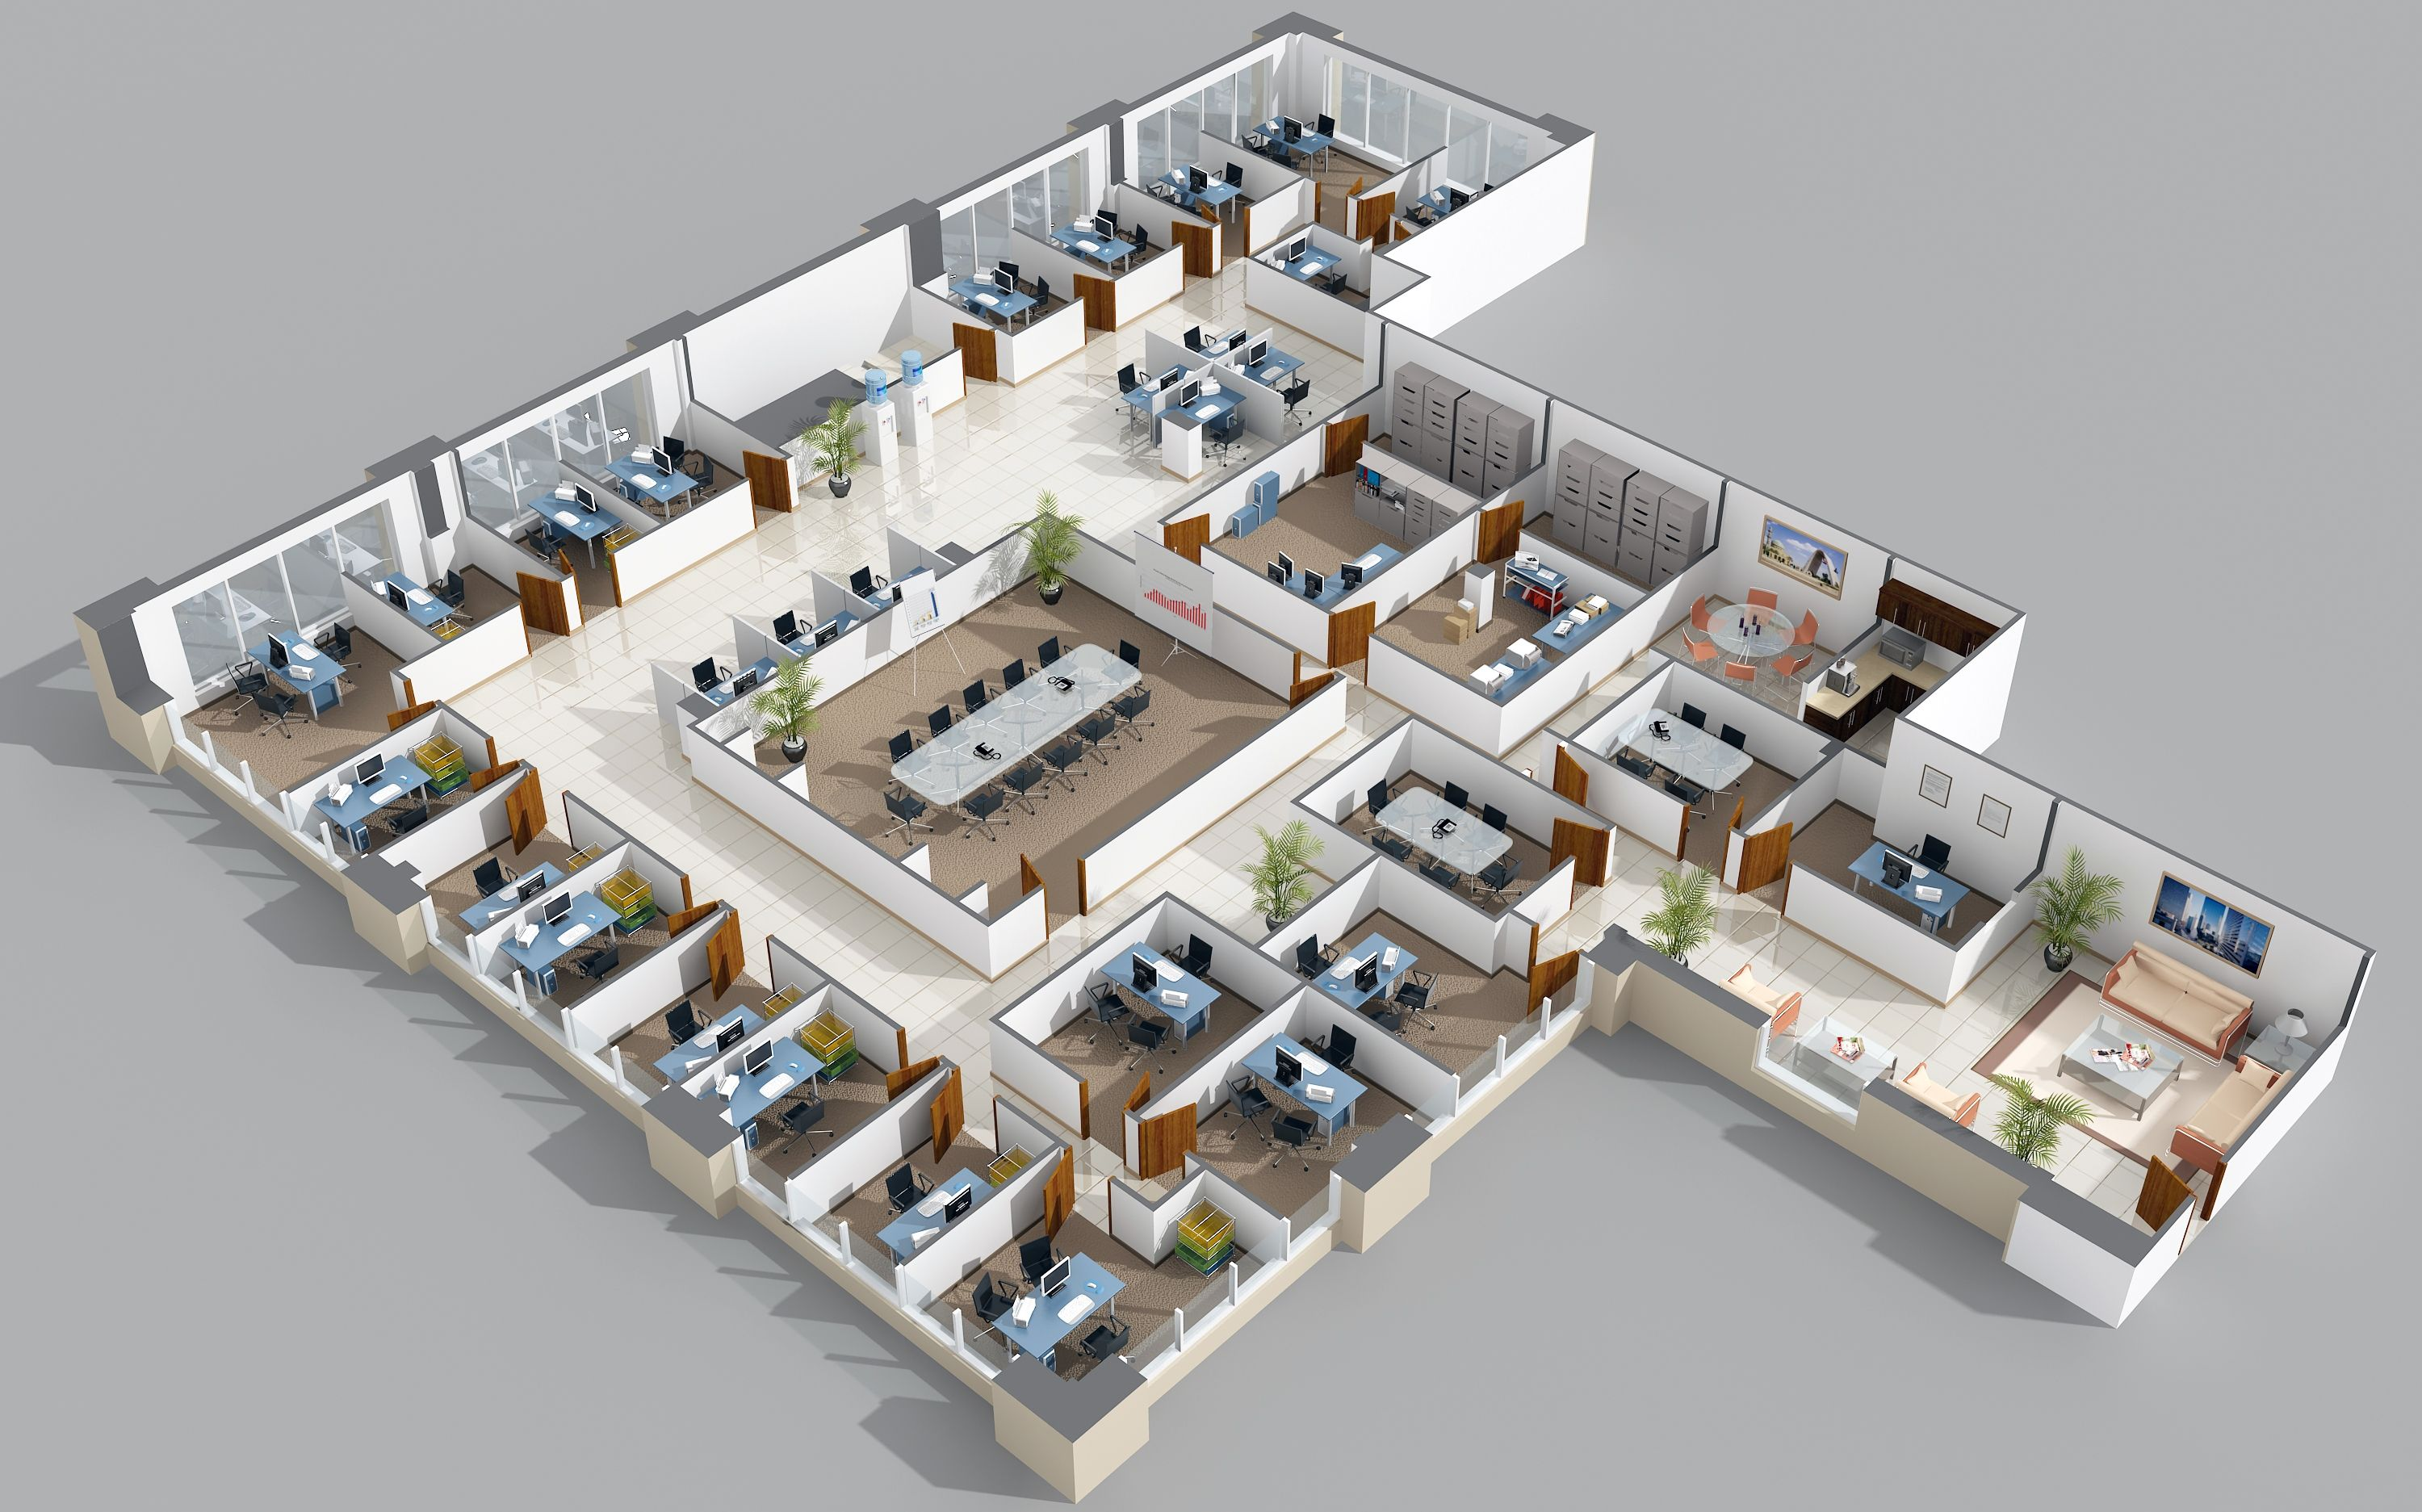 Office layout no doors veritas 99 jean pinterest Office design 3d